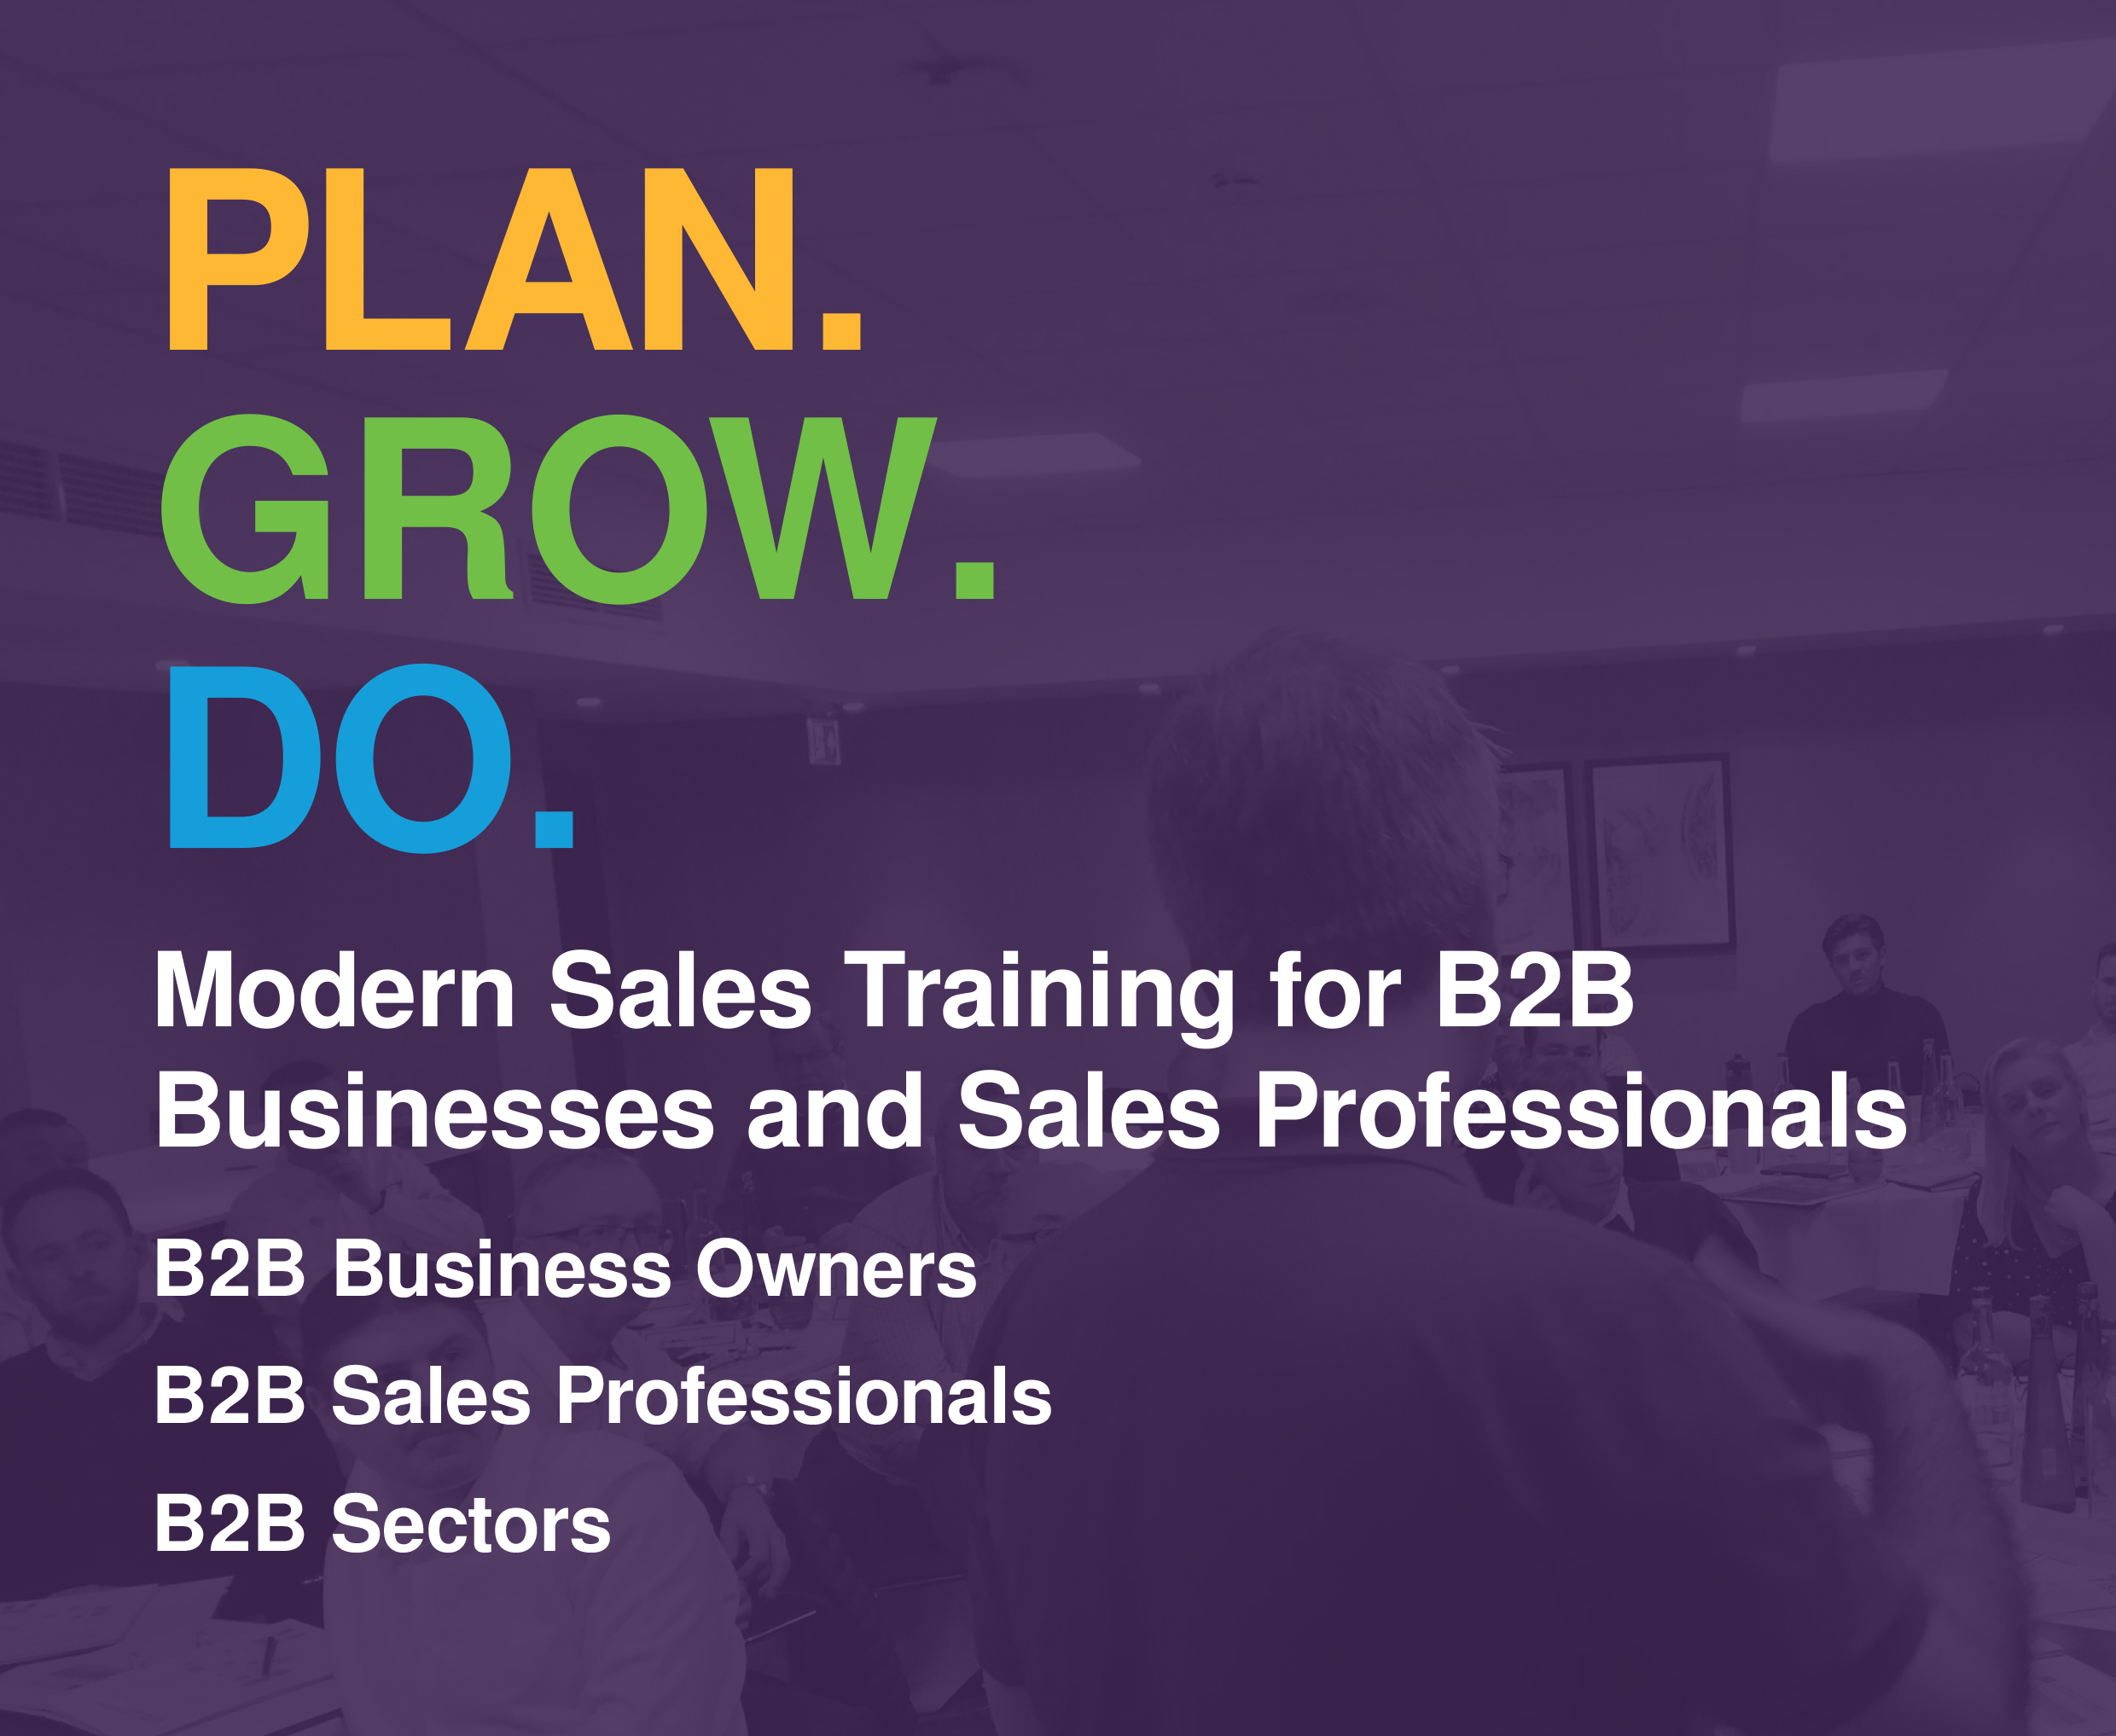 ..Plan. Grow. Do. Modern Sales Training for B2B Businesses and Sales. B2B For Business Owners, B2B Sales Professionals, B2B Sectors.